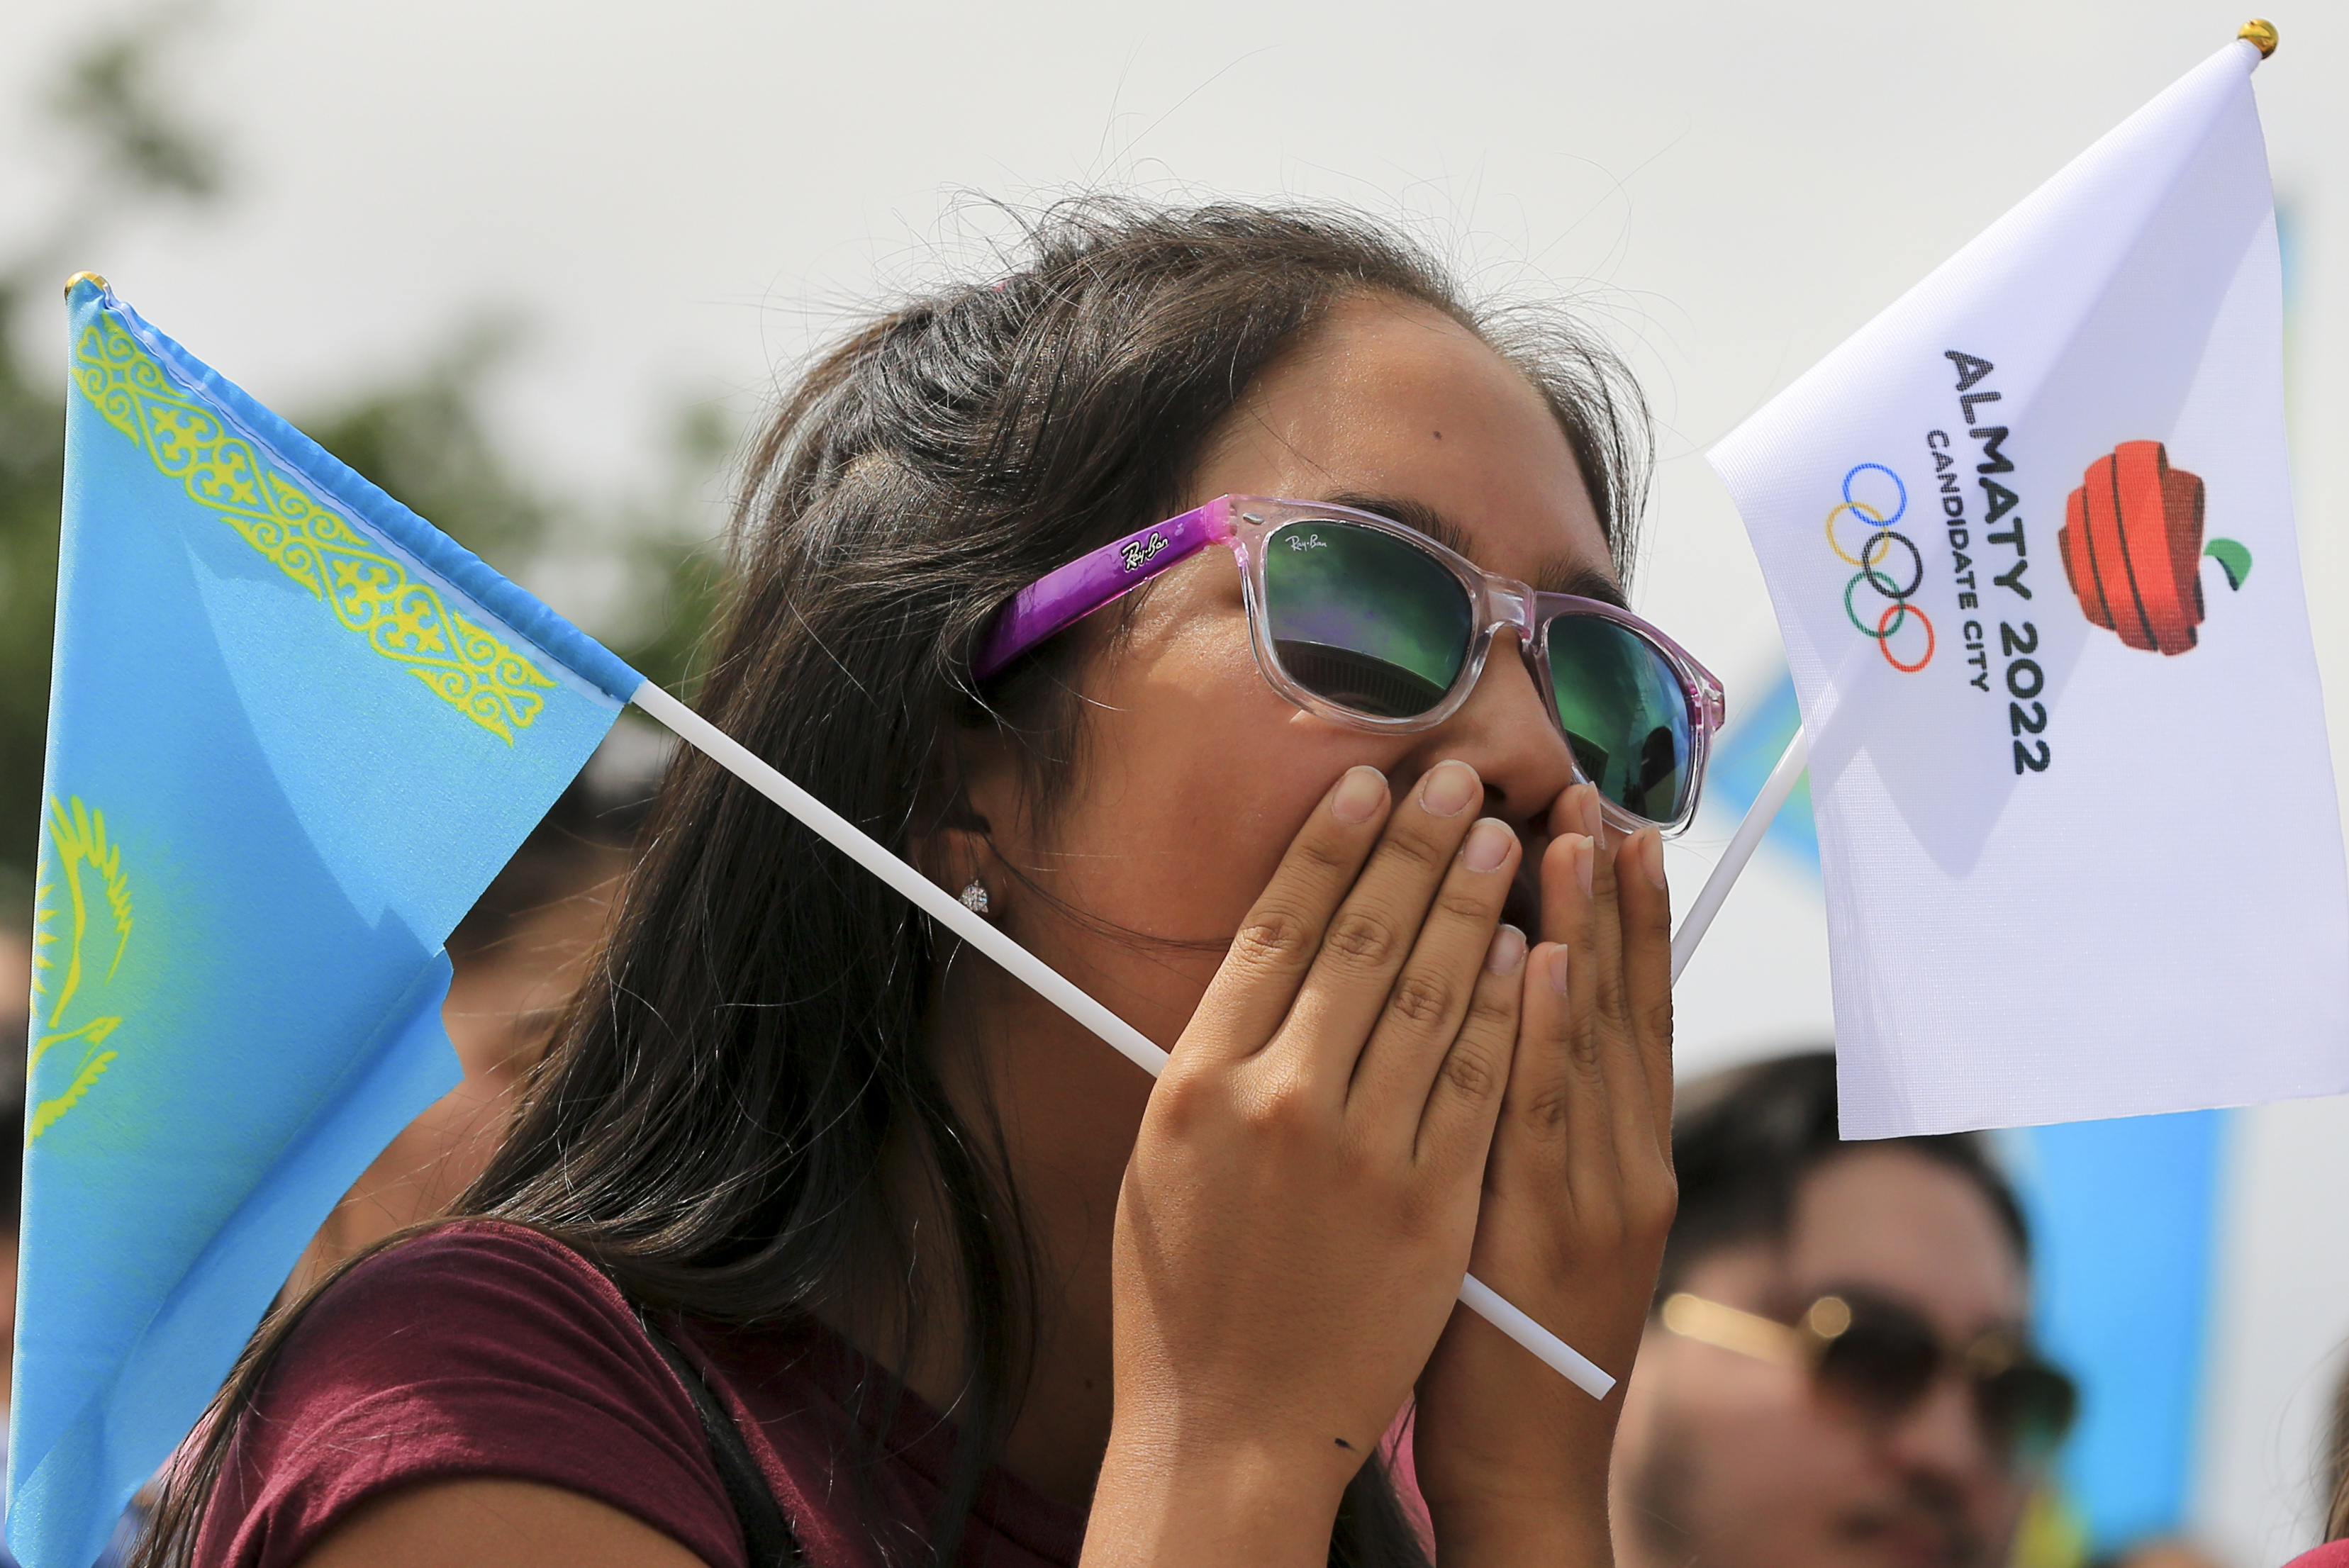 A woman reacts as she watches the Olympic vote in Almaty, Kazakhstan, Friday, July 31, 2015. Beijing has been selected to host the 2022 Winter Olympics, becoming the first city awarded both the winter and summer games. Beijing defeated Almaty, Kazakhstan,